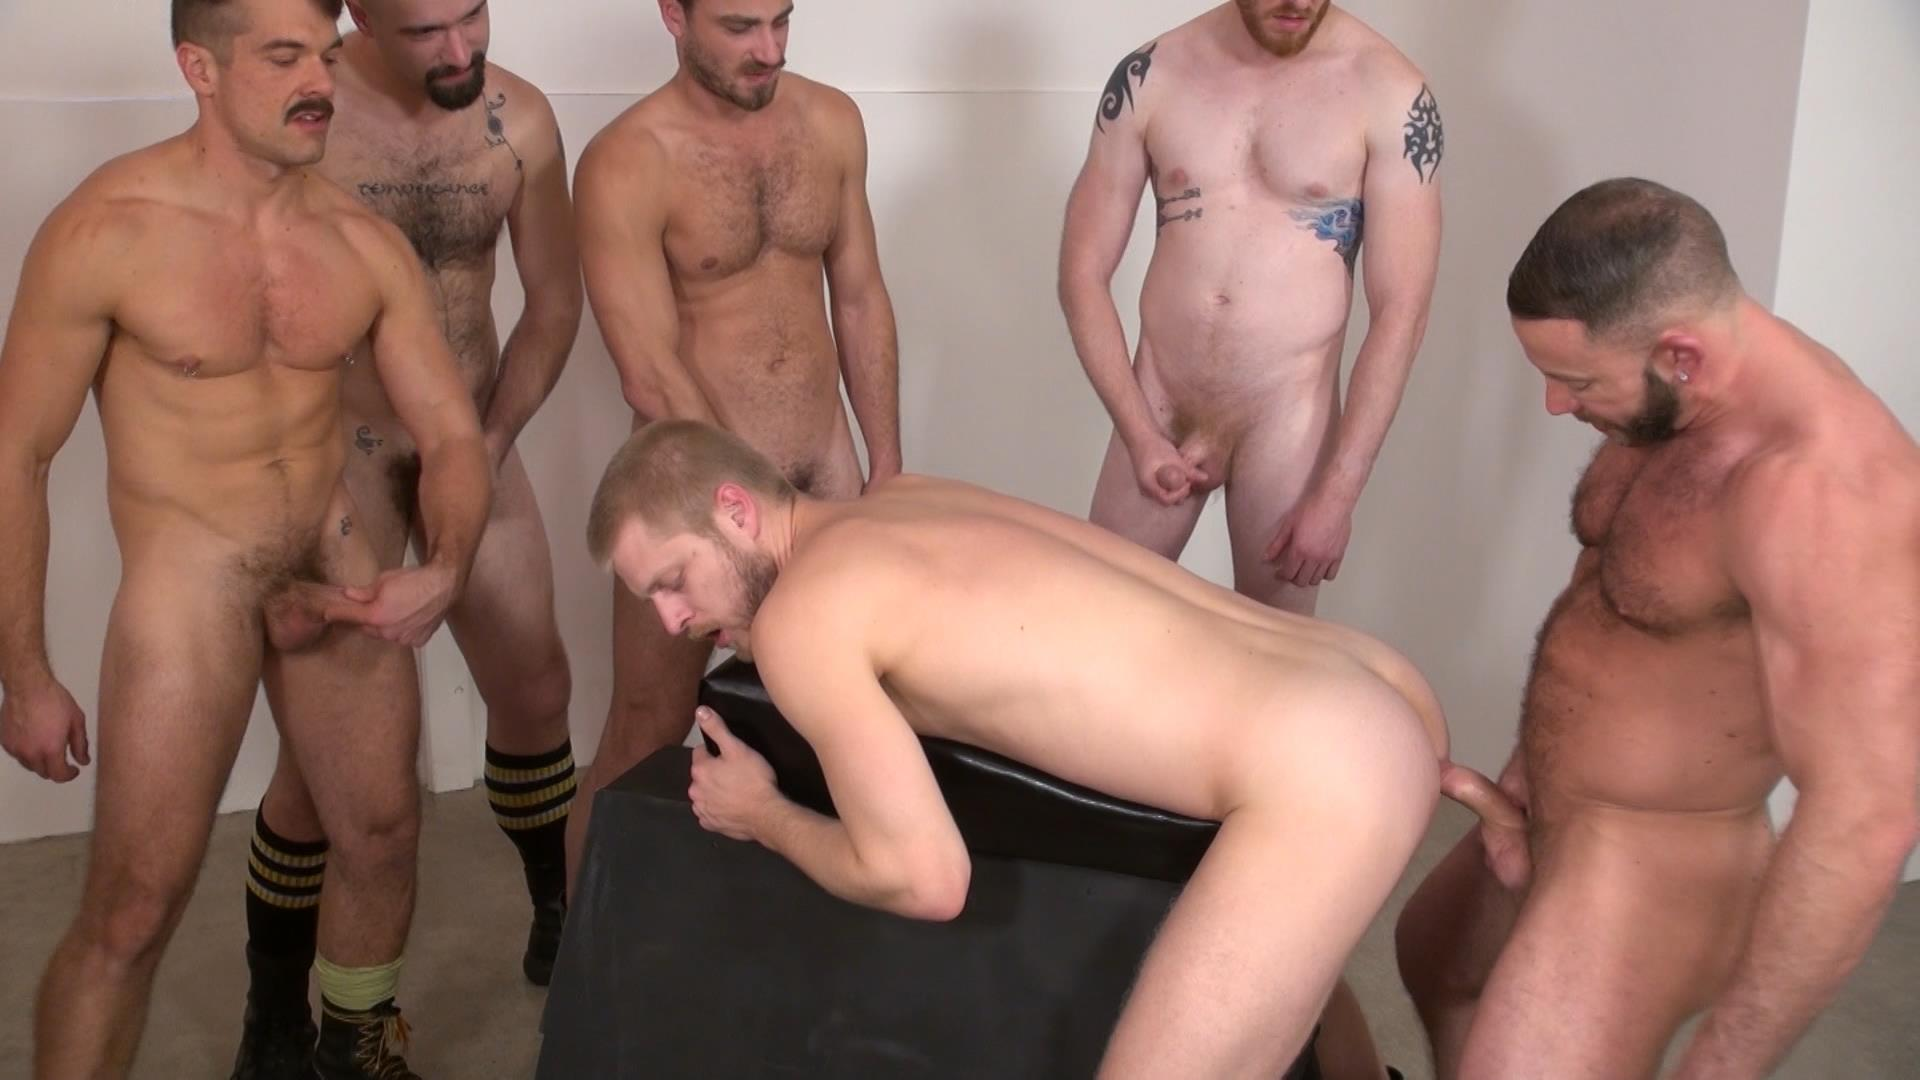 Gay men bareback piss sex while smoking